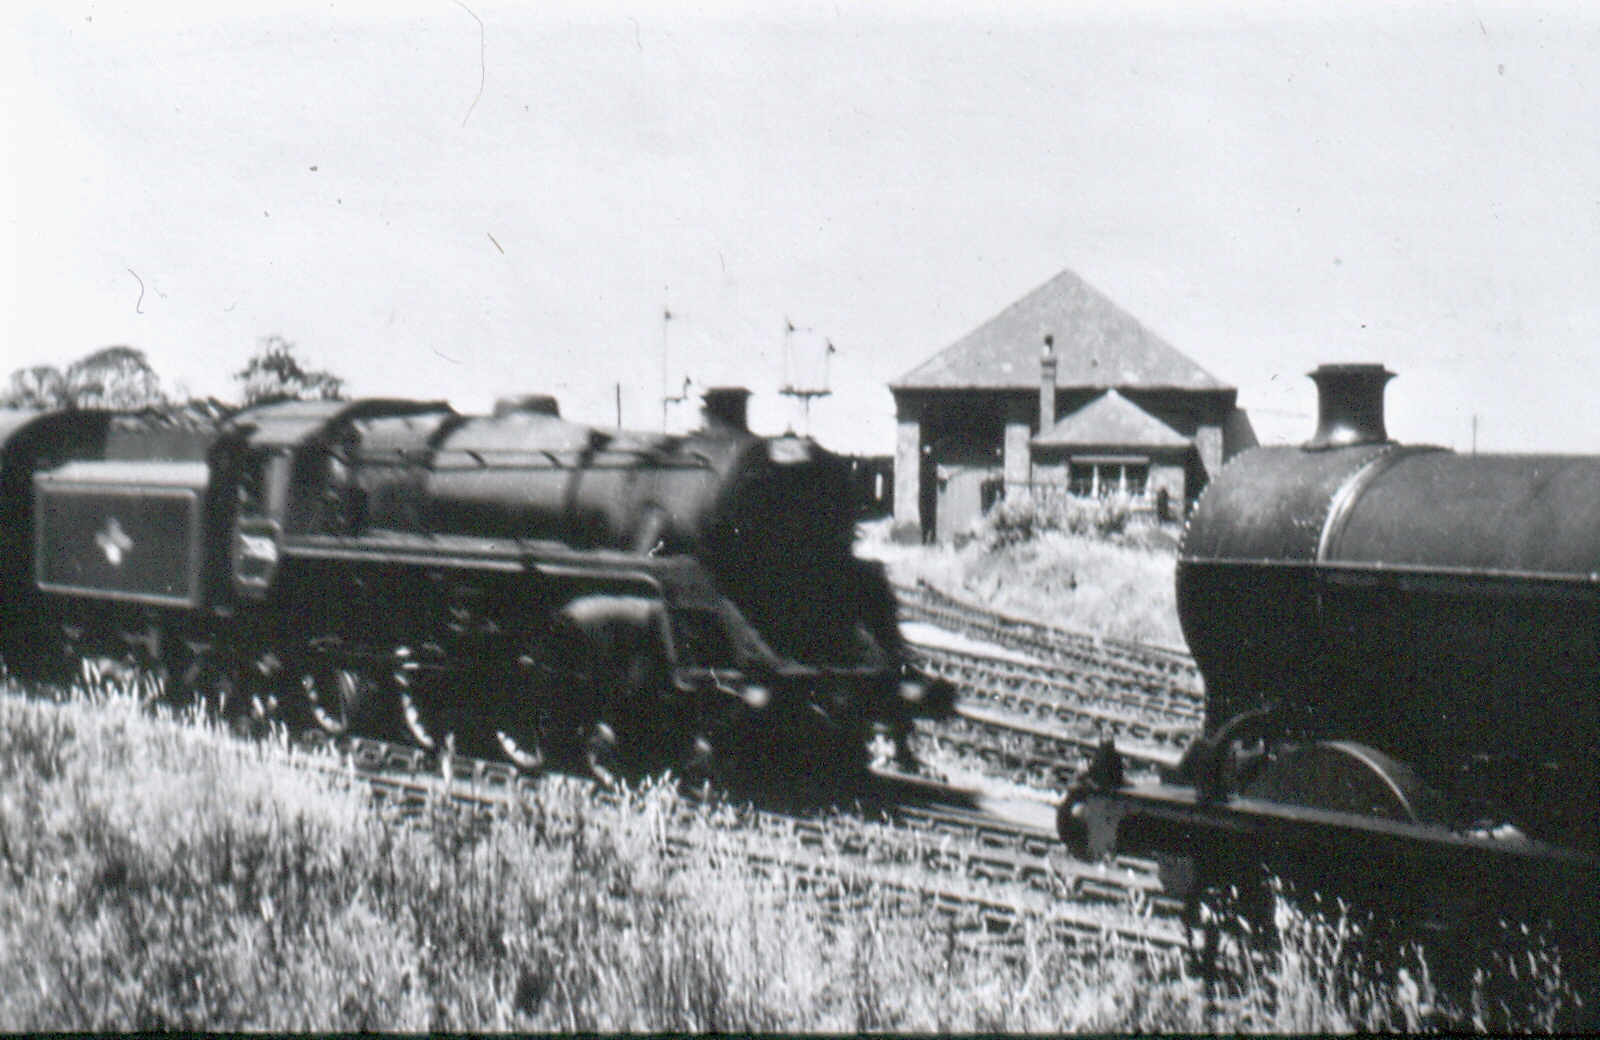 Start of the branch line seen between two engines.